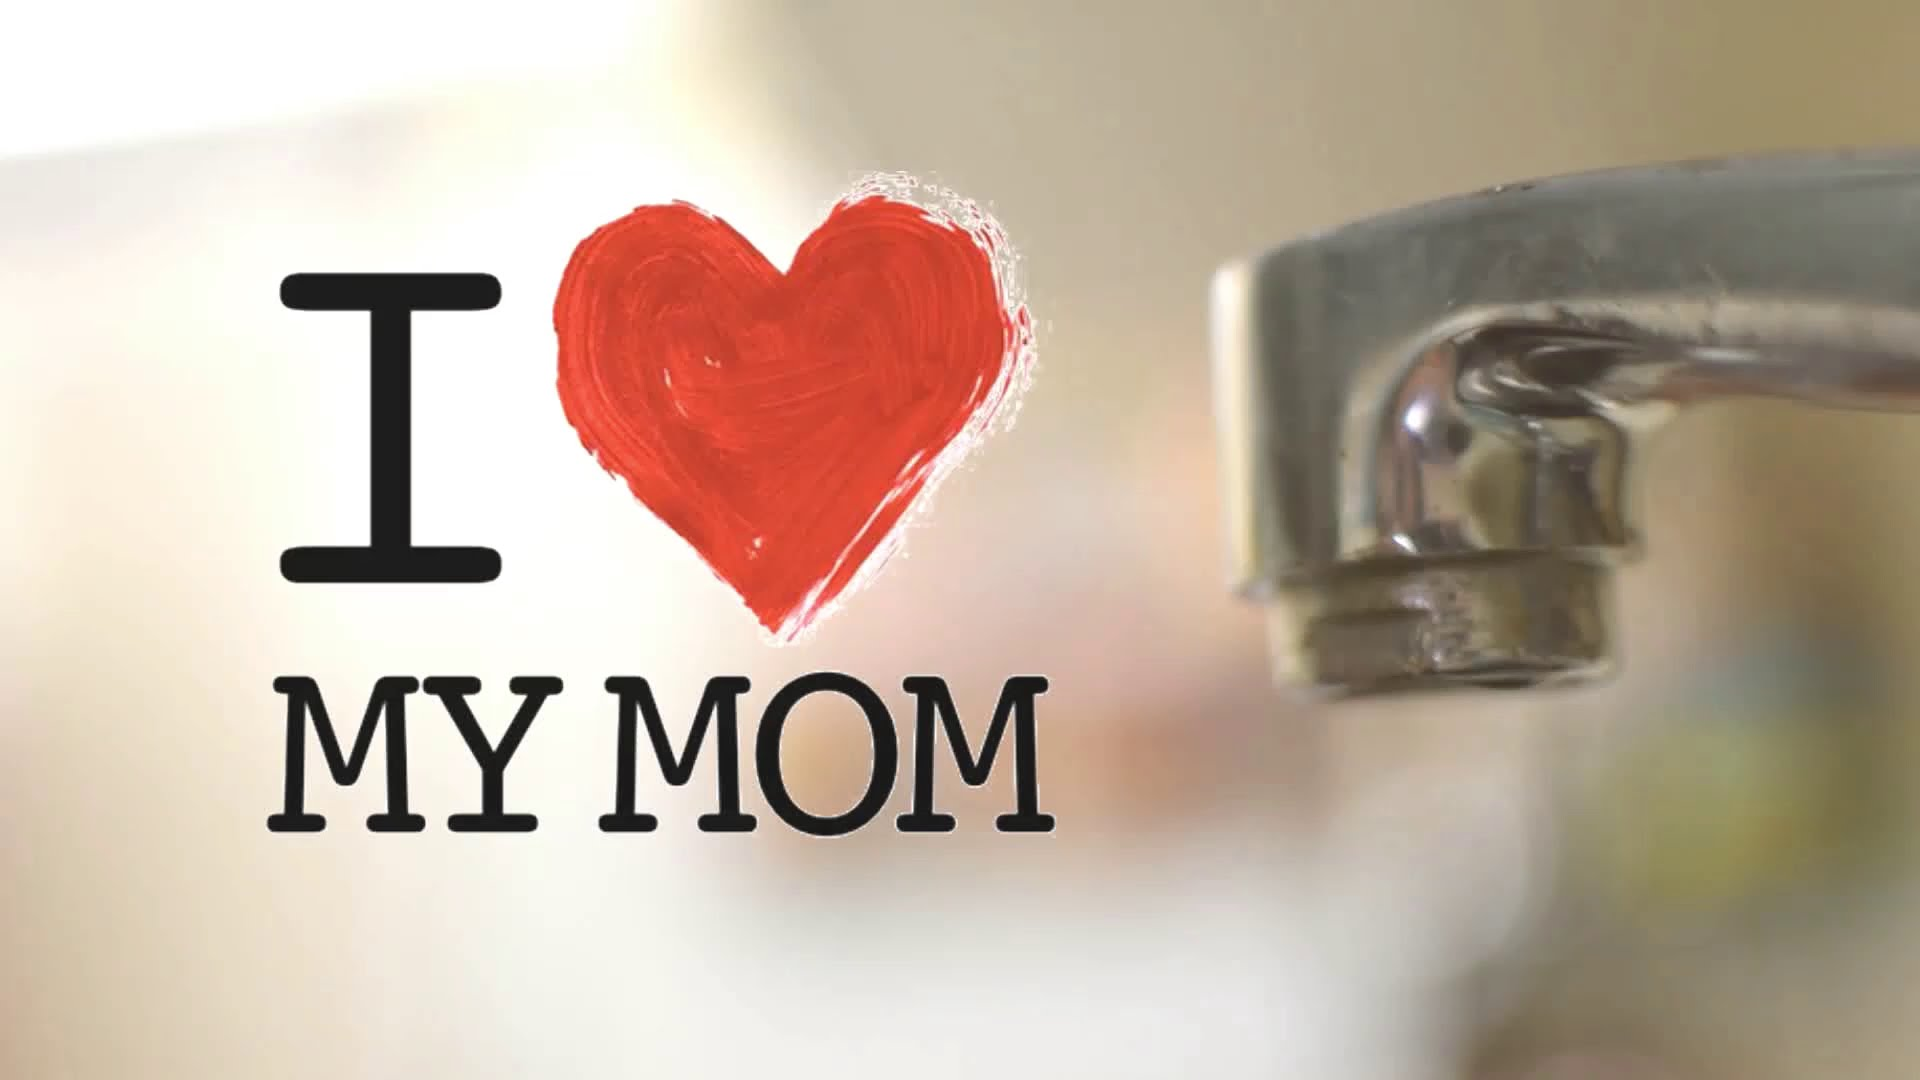 I Love You Mom Wallpapers HD 1920x1080